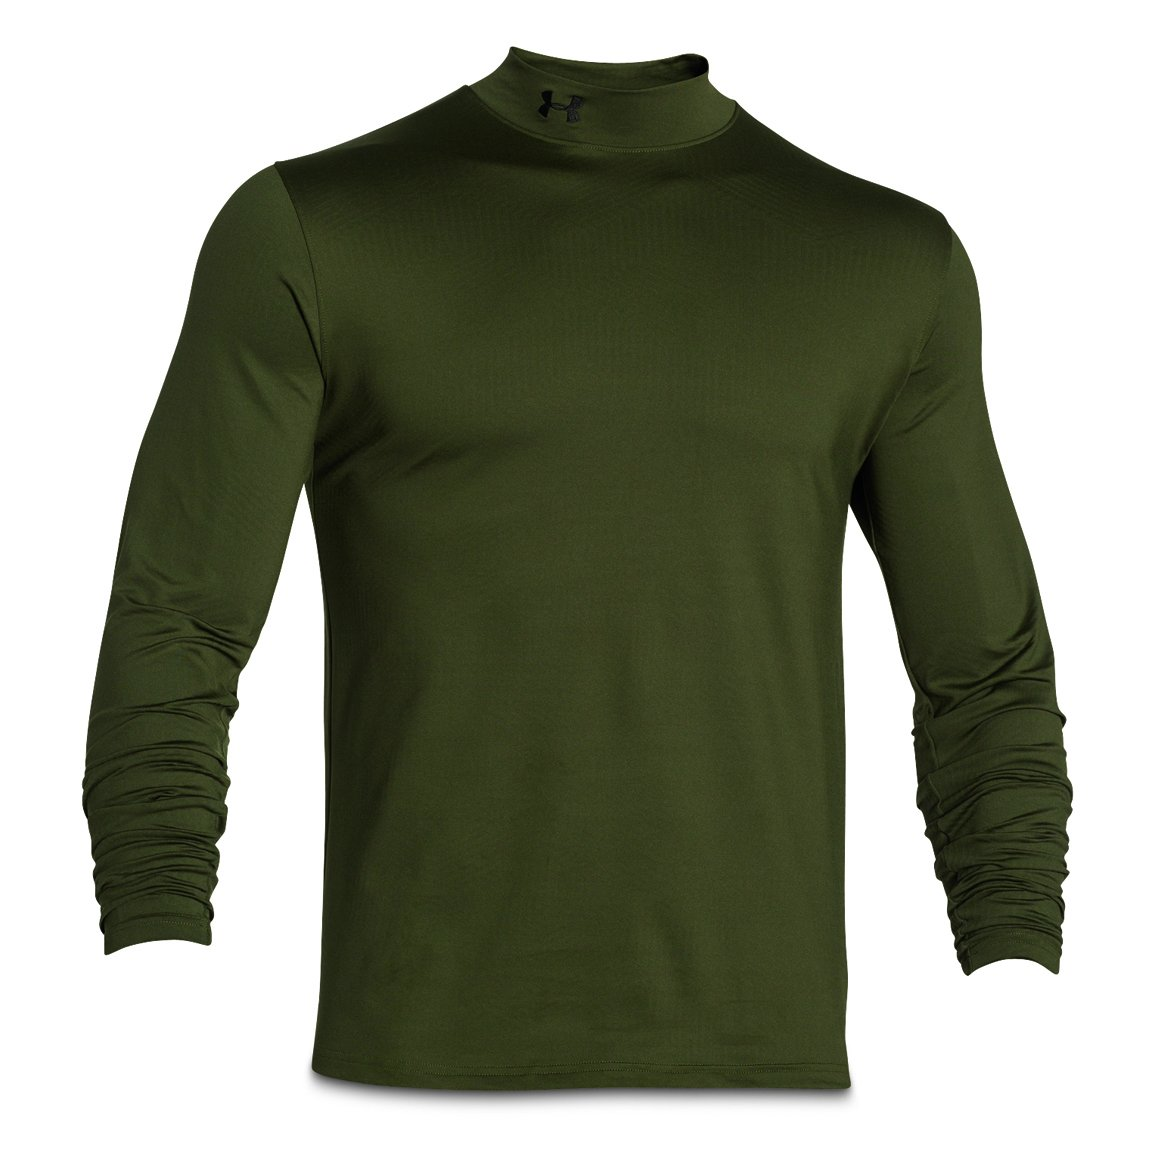 Under Armour Mens ColdGear Infrared Fitted Mock Under Armour Outdoors 1238393-437-XL